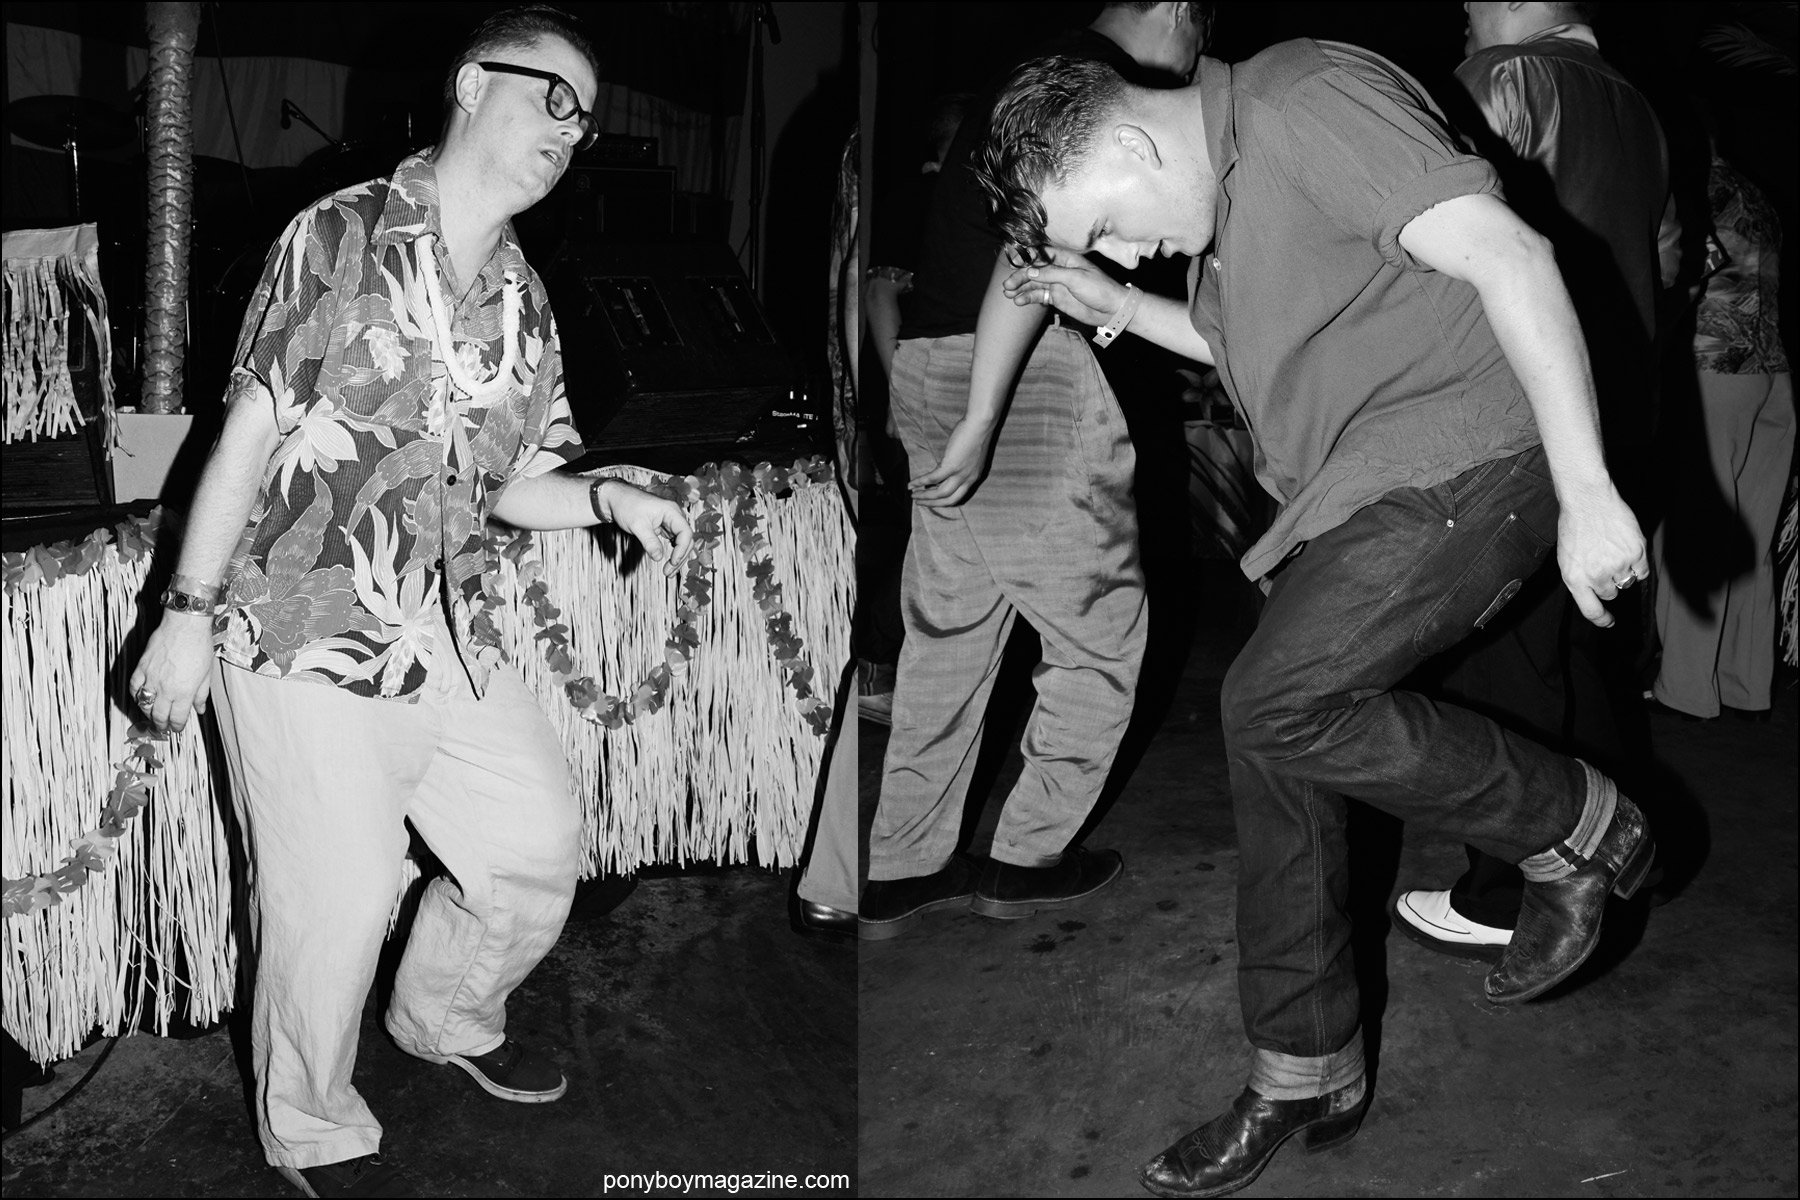 Rockabilly dancers bop on the dance floor at Hula Rock Vol 2 weekender. Photographs by Alexander Thompson for Ponyboy magazine NY.